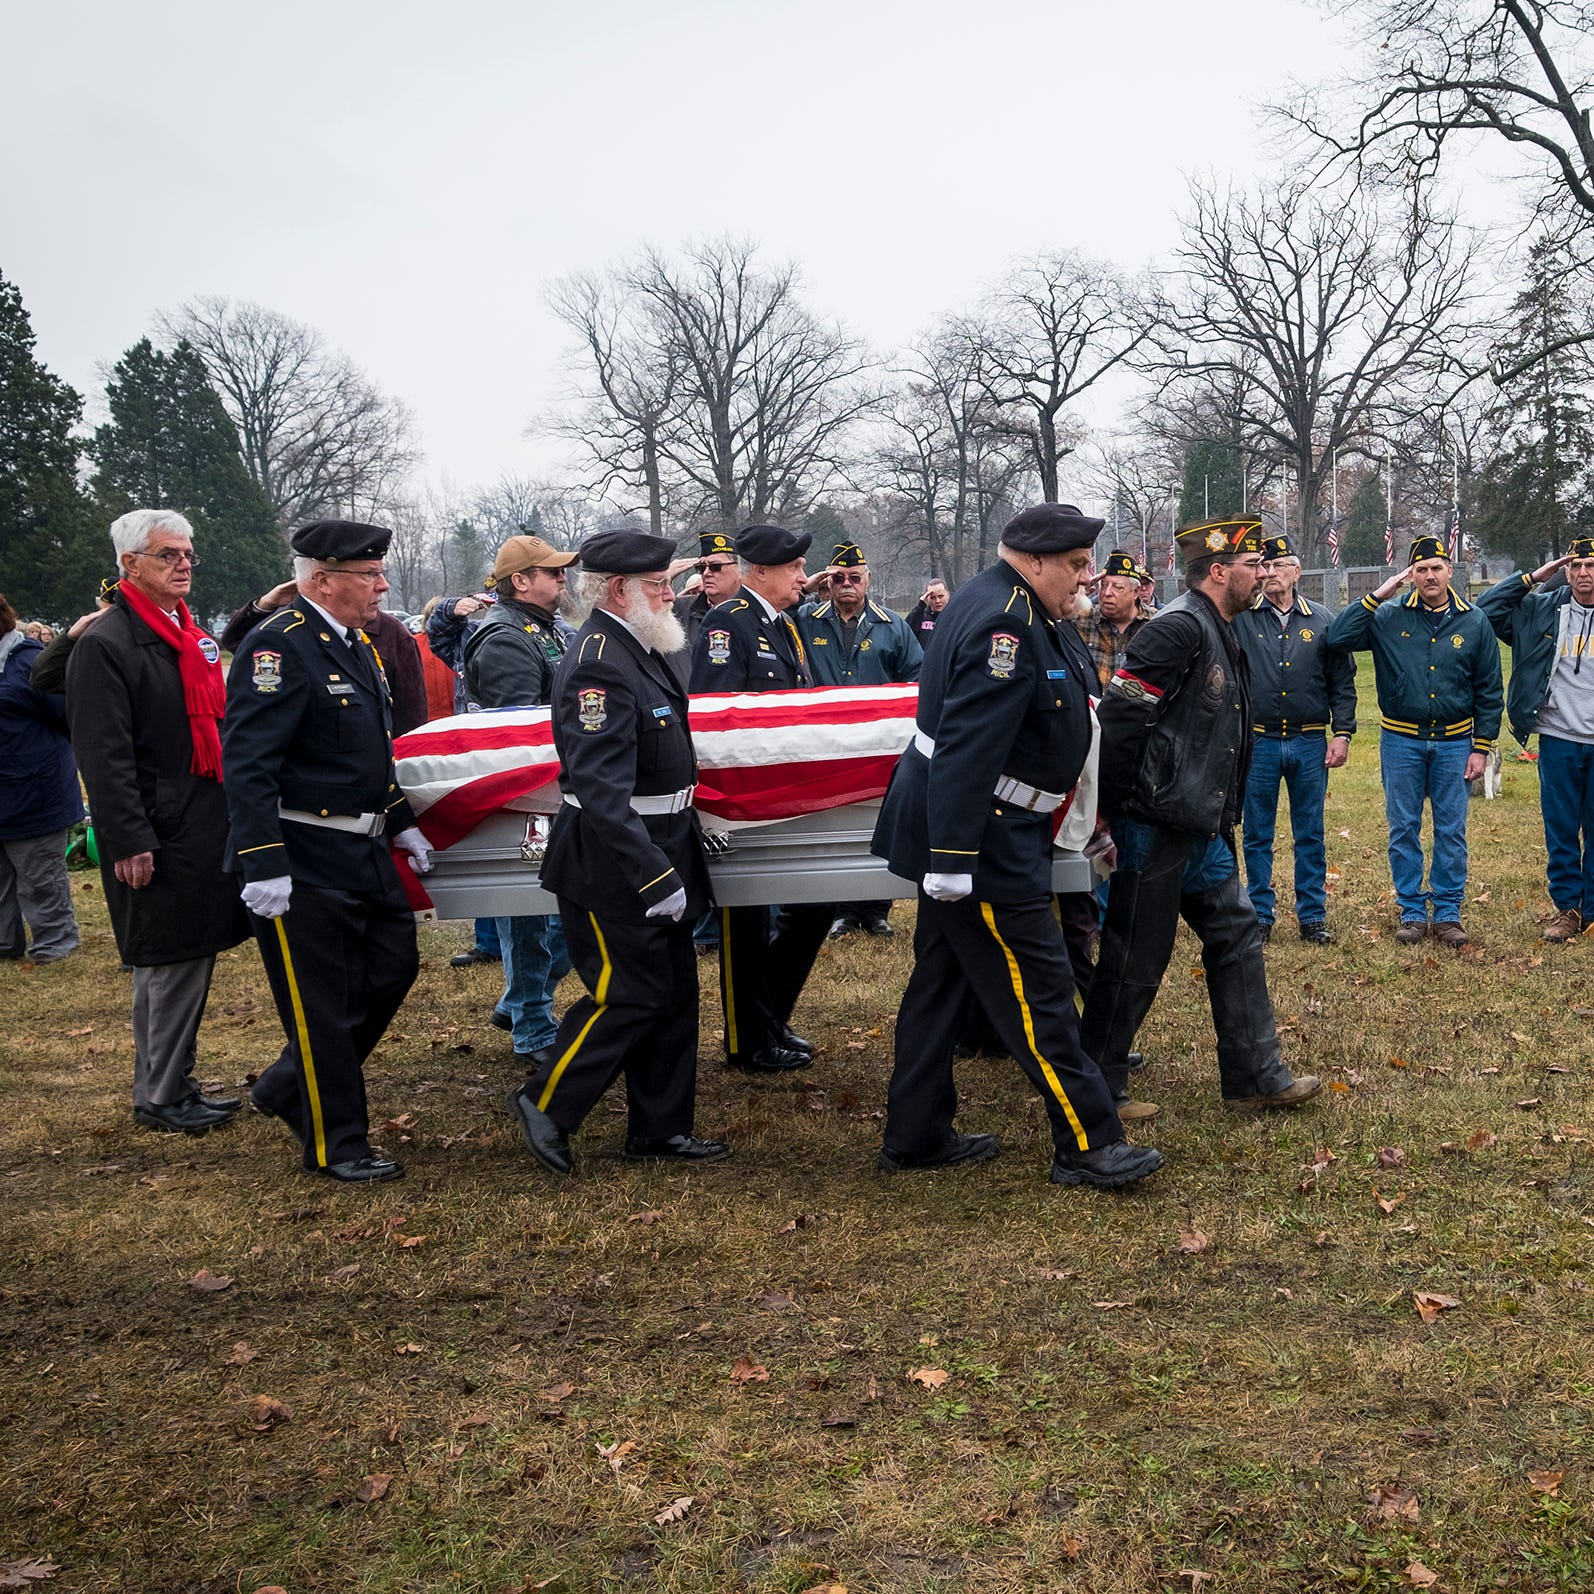 Band of brothers honor one of their own